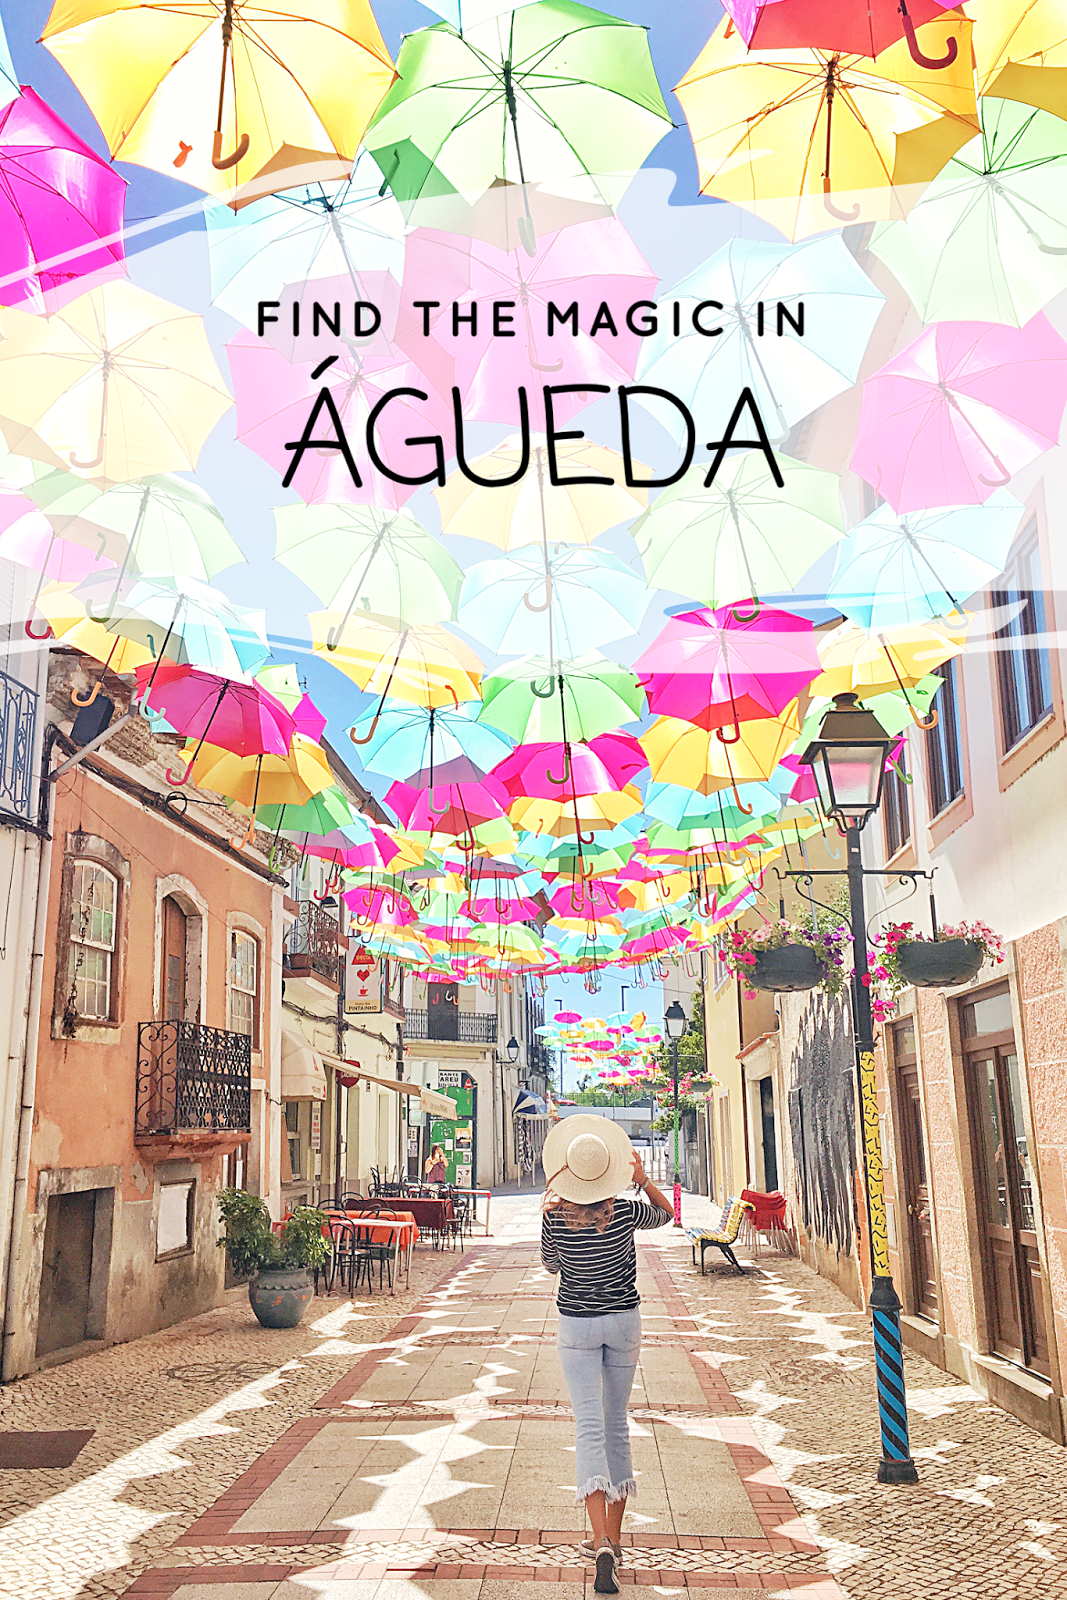 Follow me for more also on instagram :) www.instagram.com/ejnets The magical place Águeda near Aveiro with The Sky Project and its umbrellas and street art is on the blog with all the travel tips how to go there. www.ejnets.com #agueda #aveiro #portugal #traveltips #tips #travel #howto #travelgirl #travelblogger #travelportugal